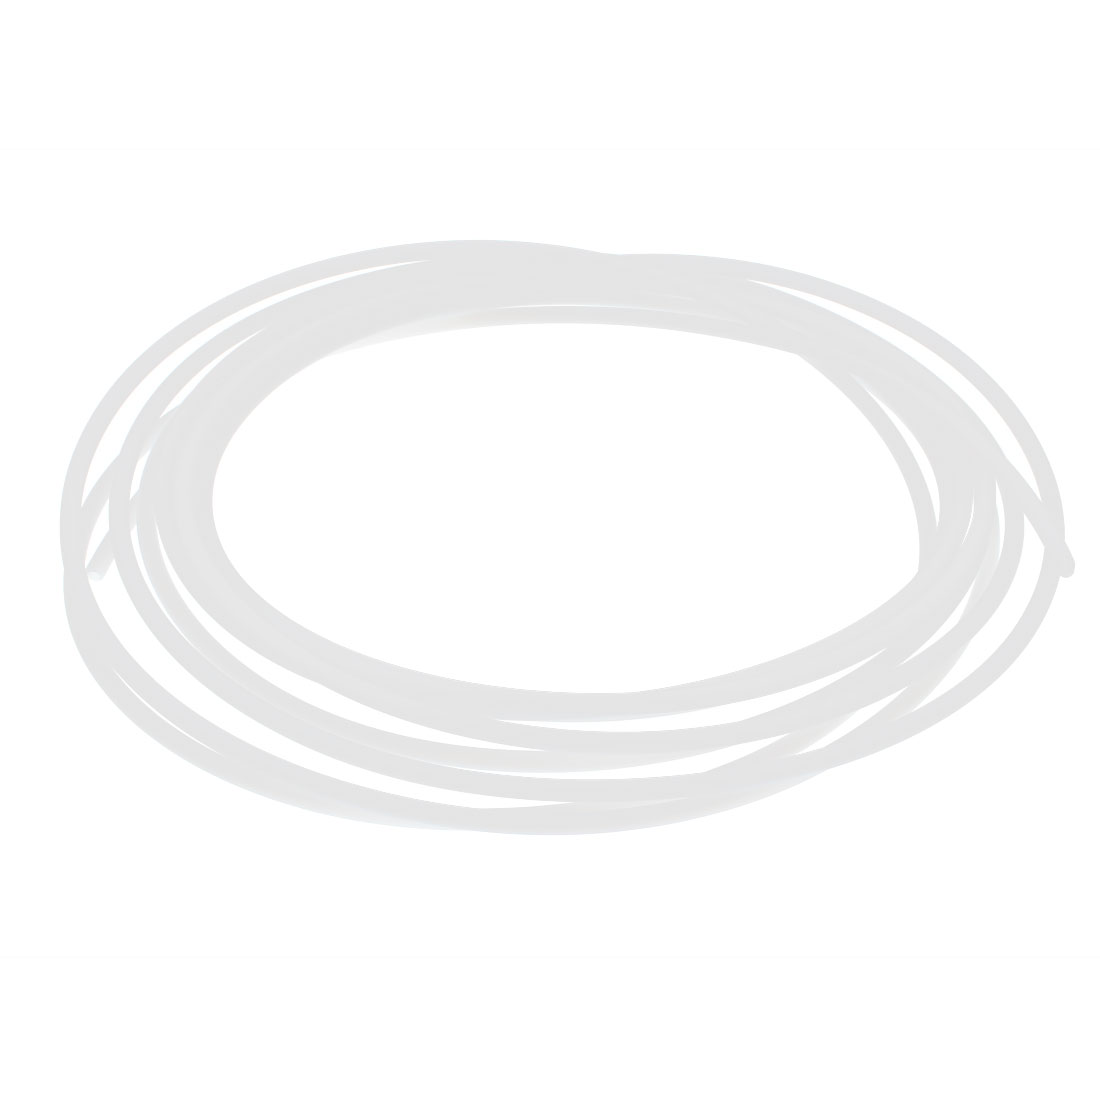 5M Length 4mm ID 6mm OD PTFE Tubing Tube Pipe for 3D Printer RepRap